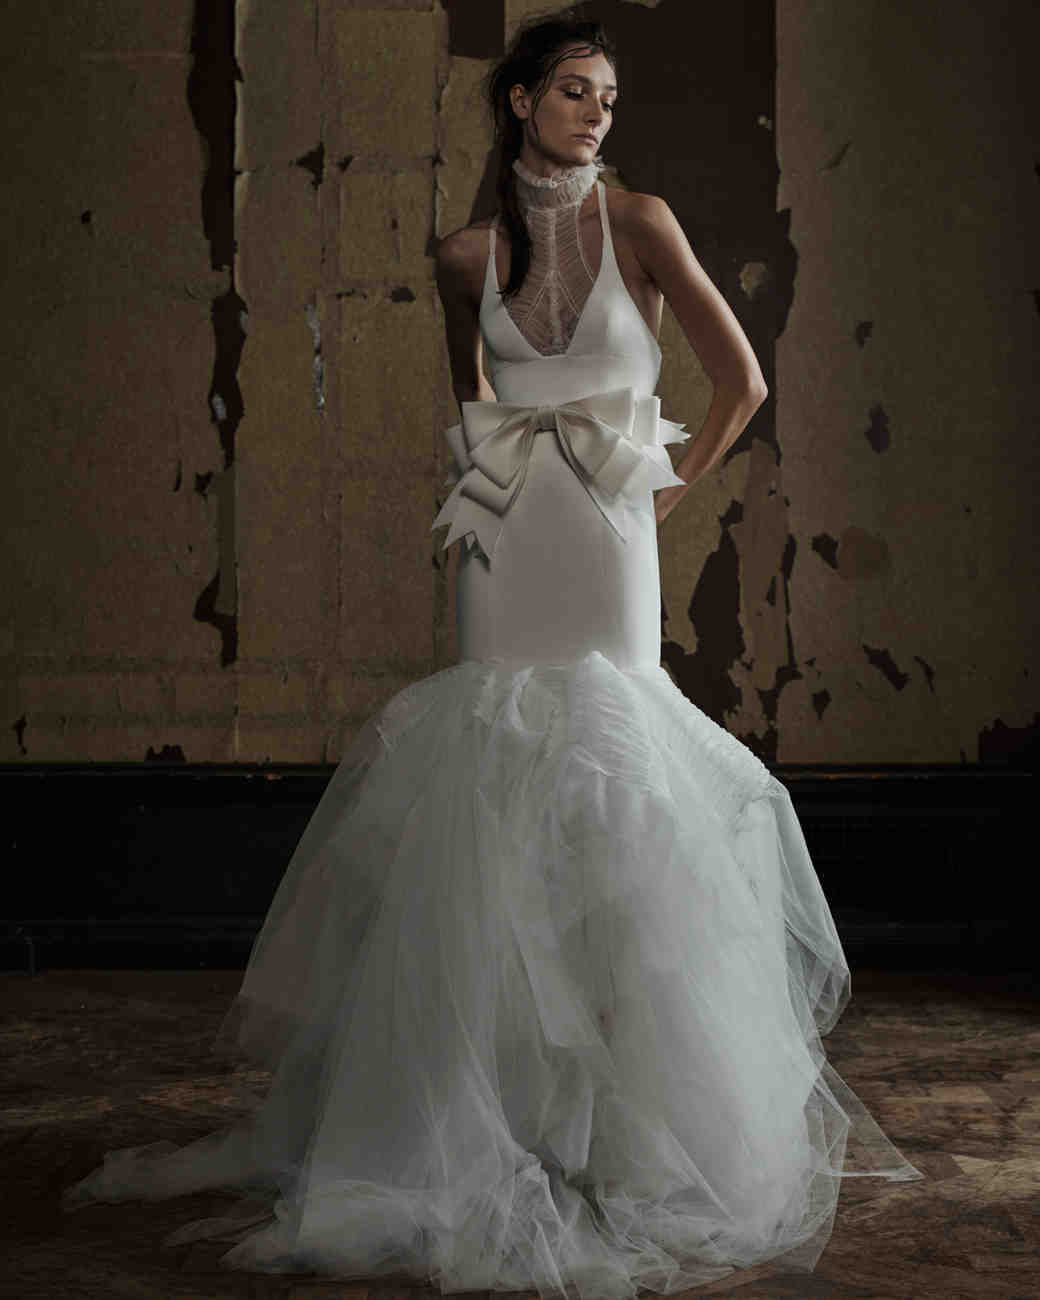 best wedding dresses spring bridal shows wedding dresses See the Jenny Packham Spring Bridal Show